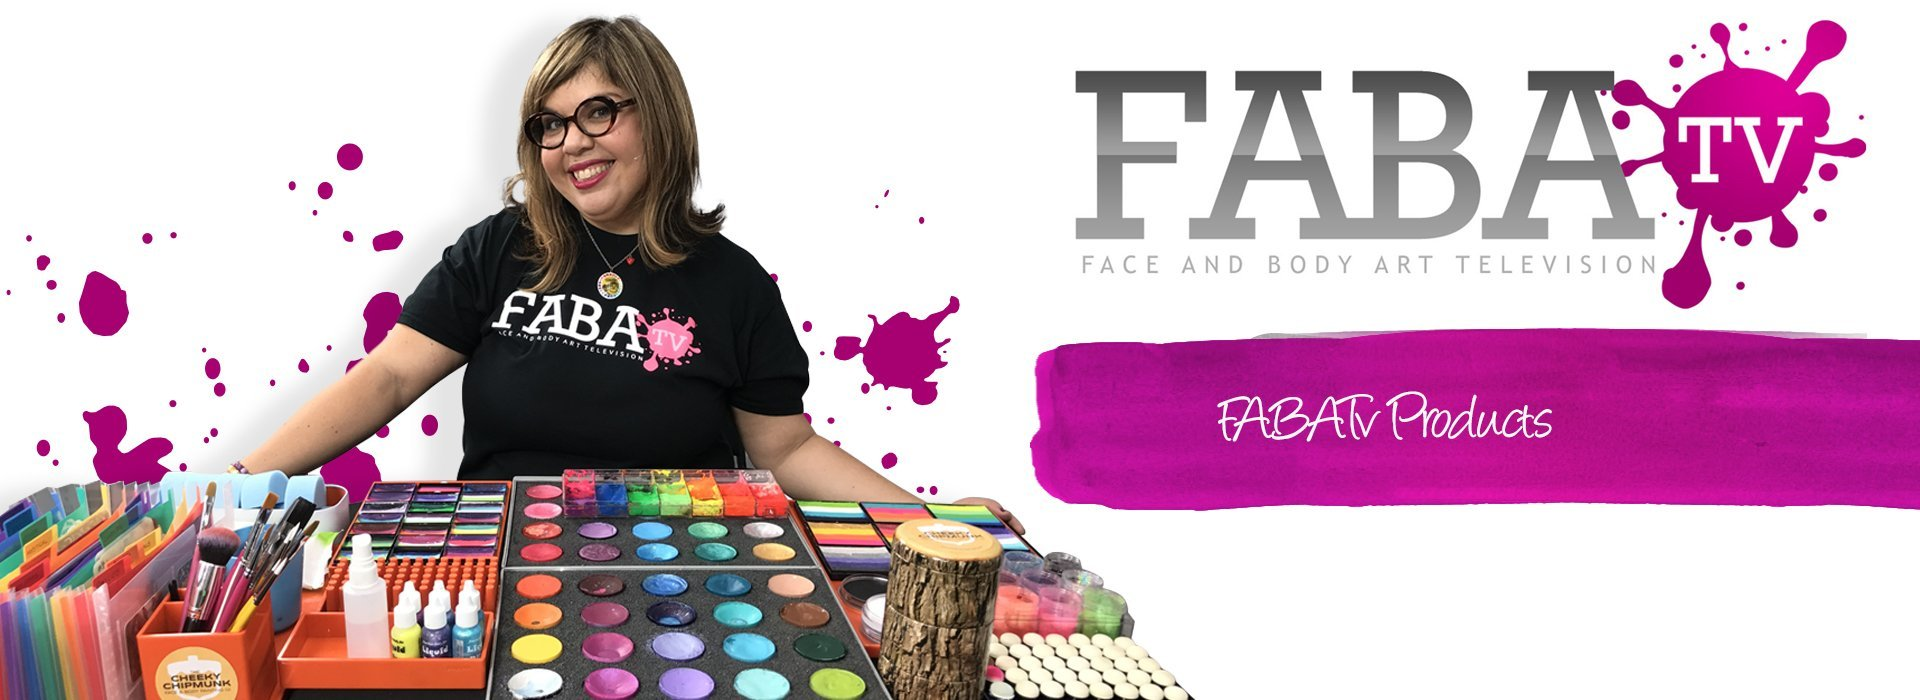 FABATv Products | Silly Farm Supplies